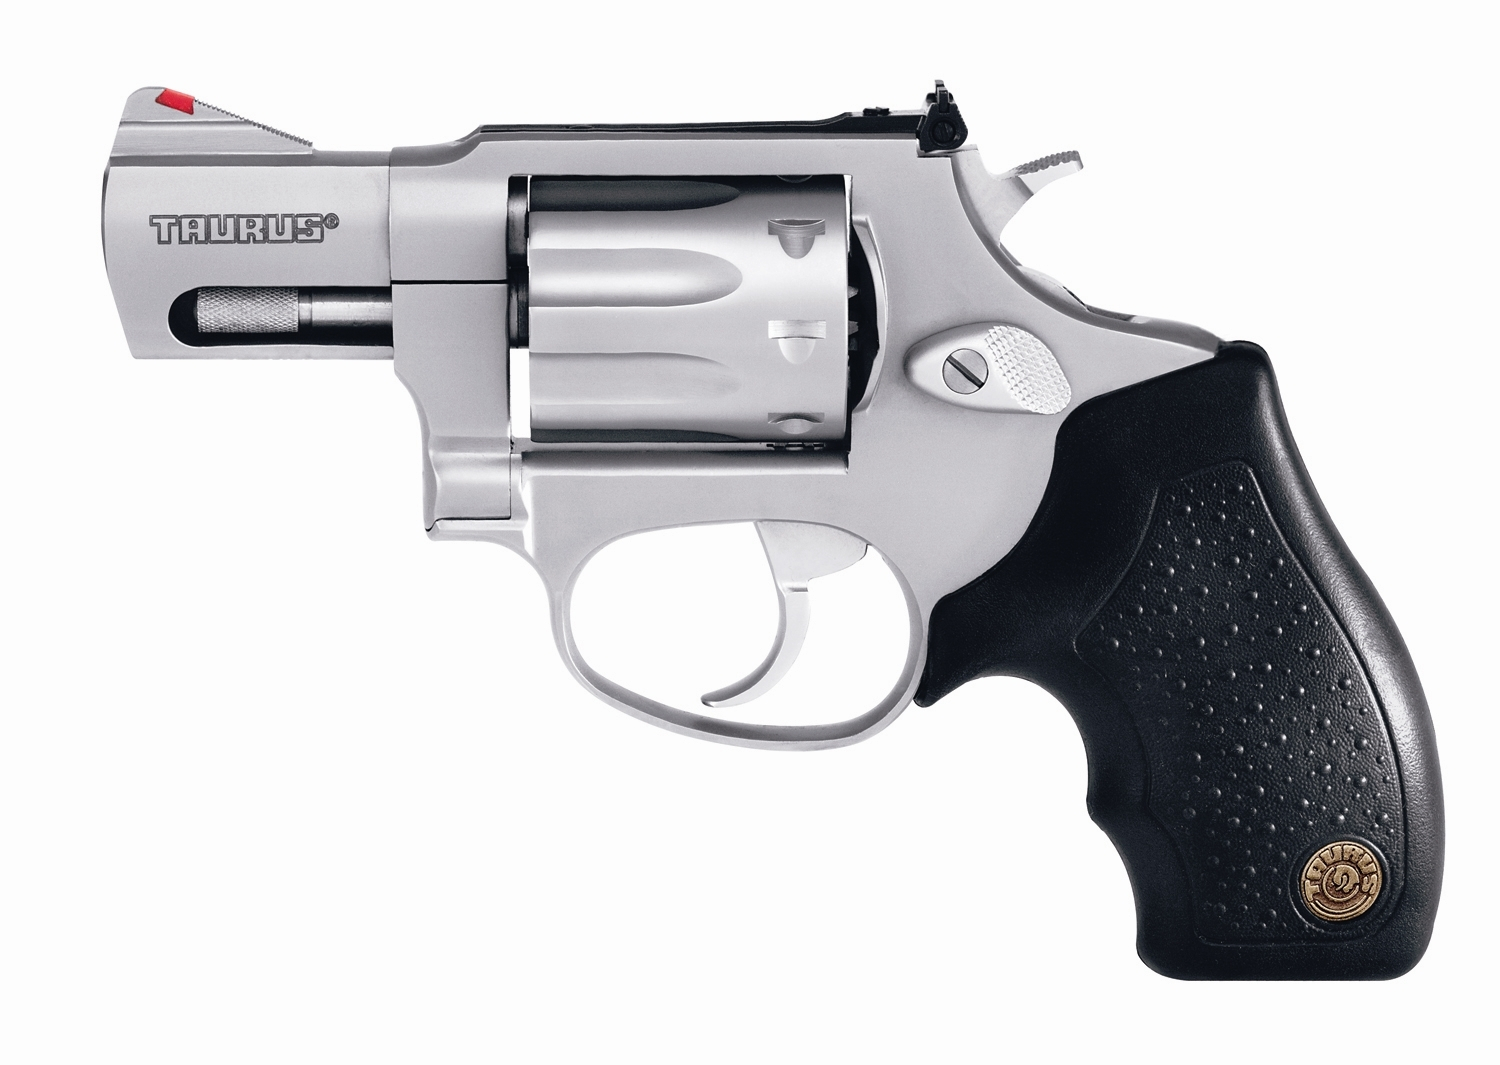 .22 Short revolver with black handle and barrel pointed to the left on a white background.